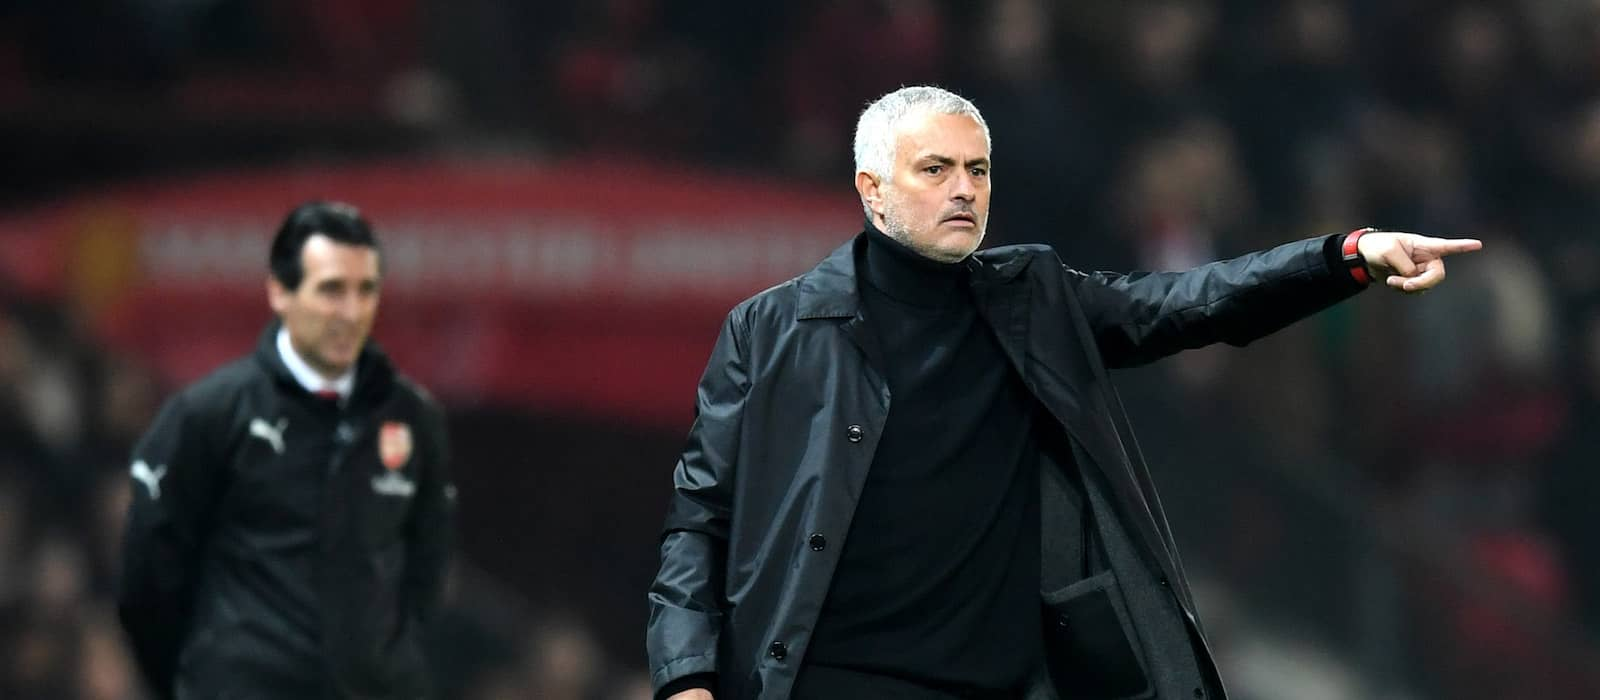 Manchester United have lost all sense of stability under Jose Mourinho